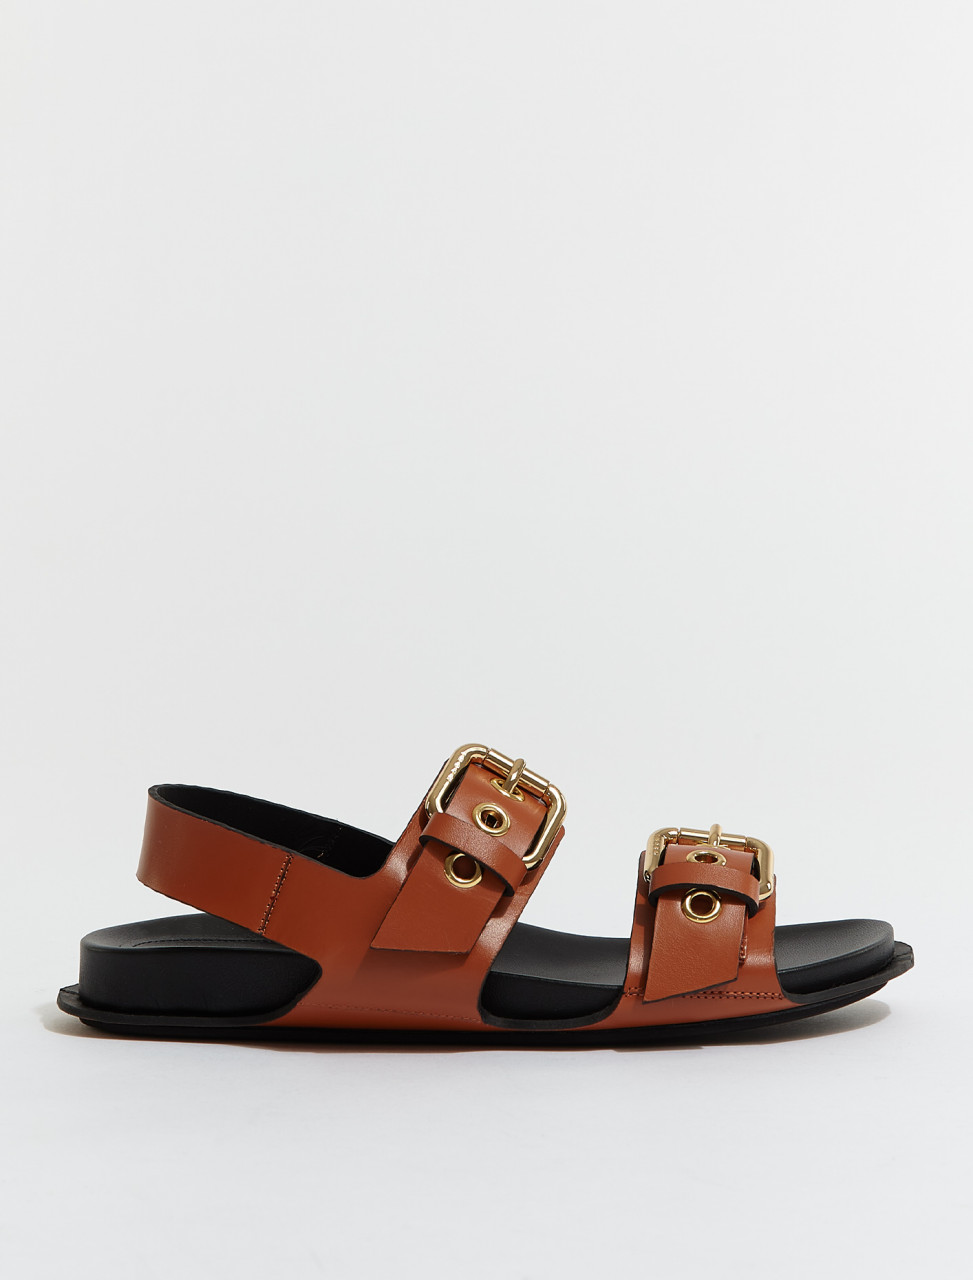 FBMS008001-Z179R MARNI SANDALS IN BROWN AND BLACK